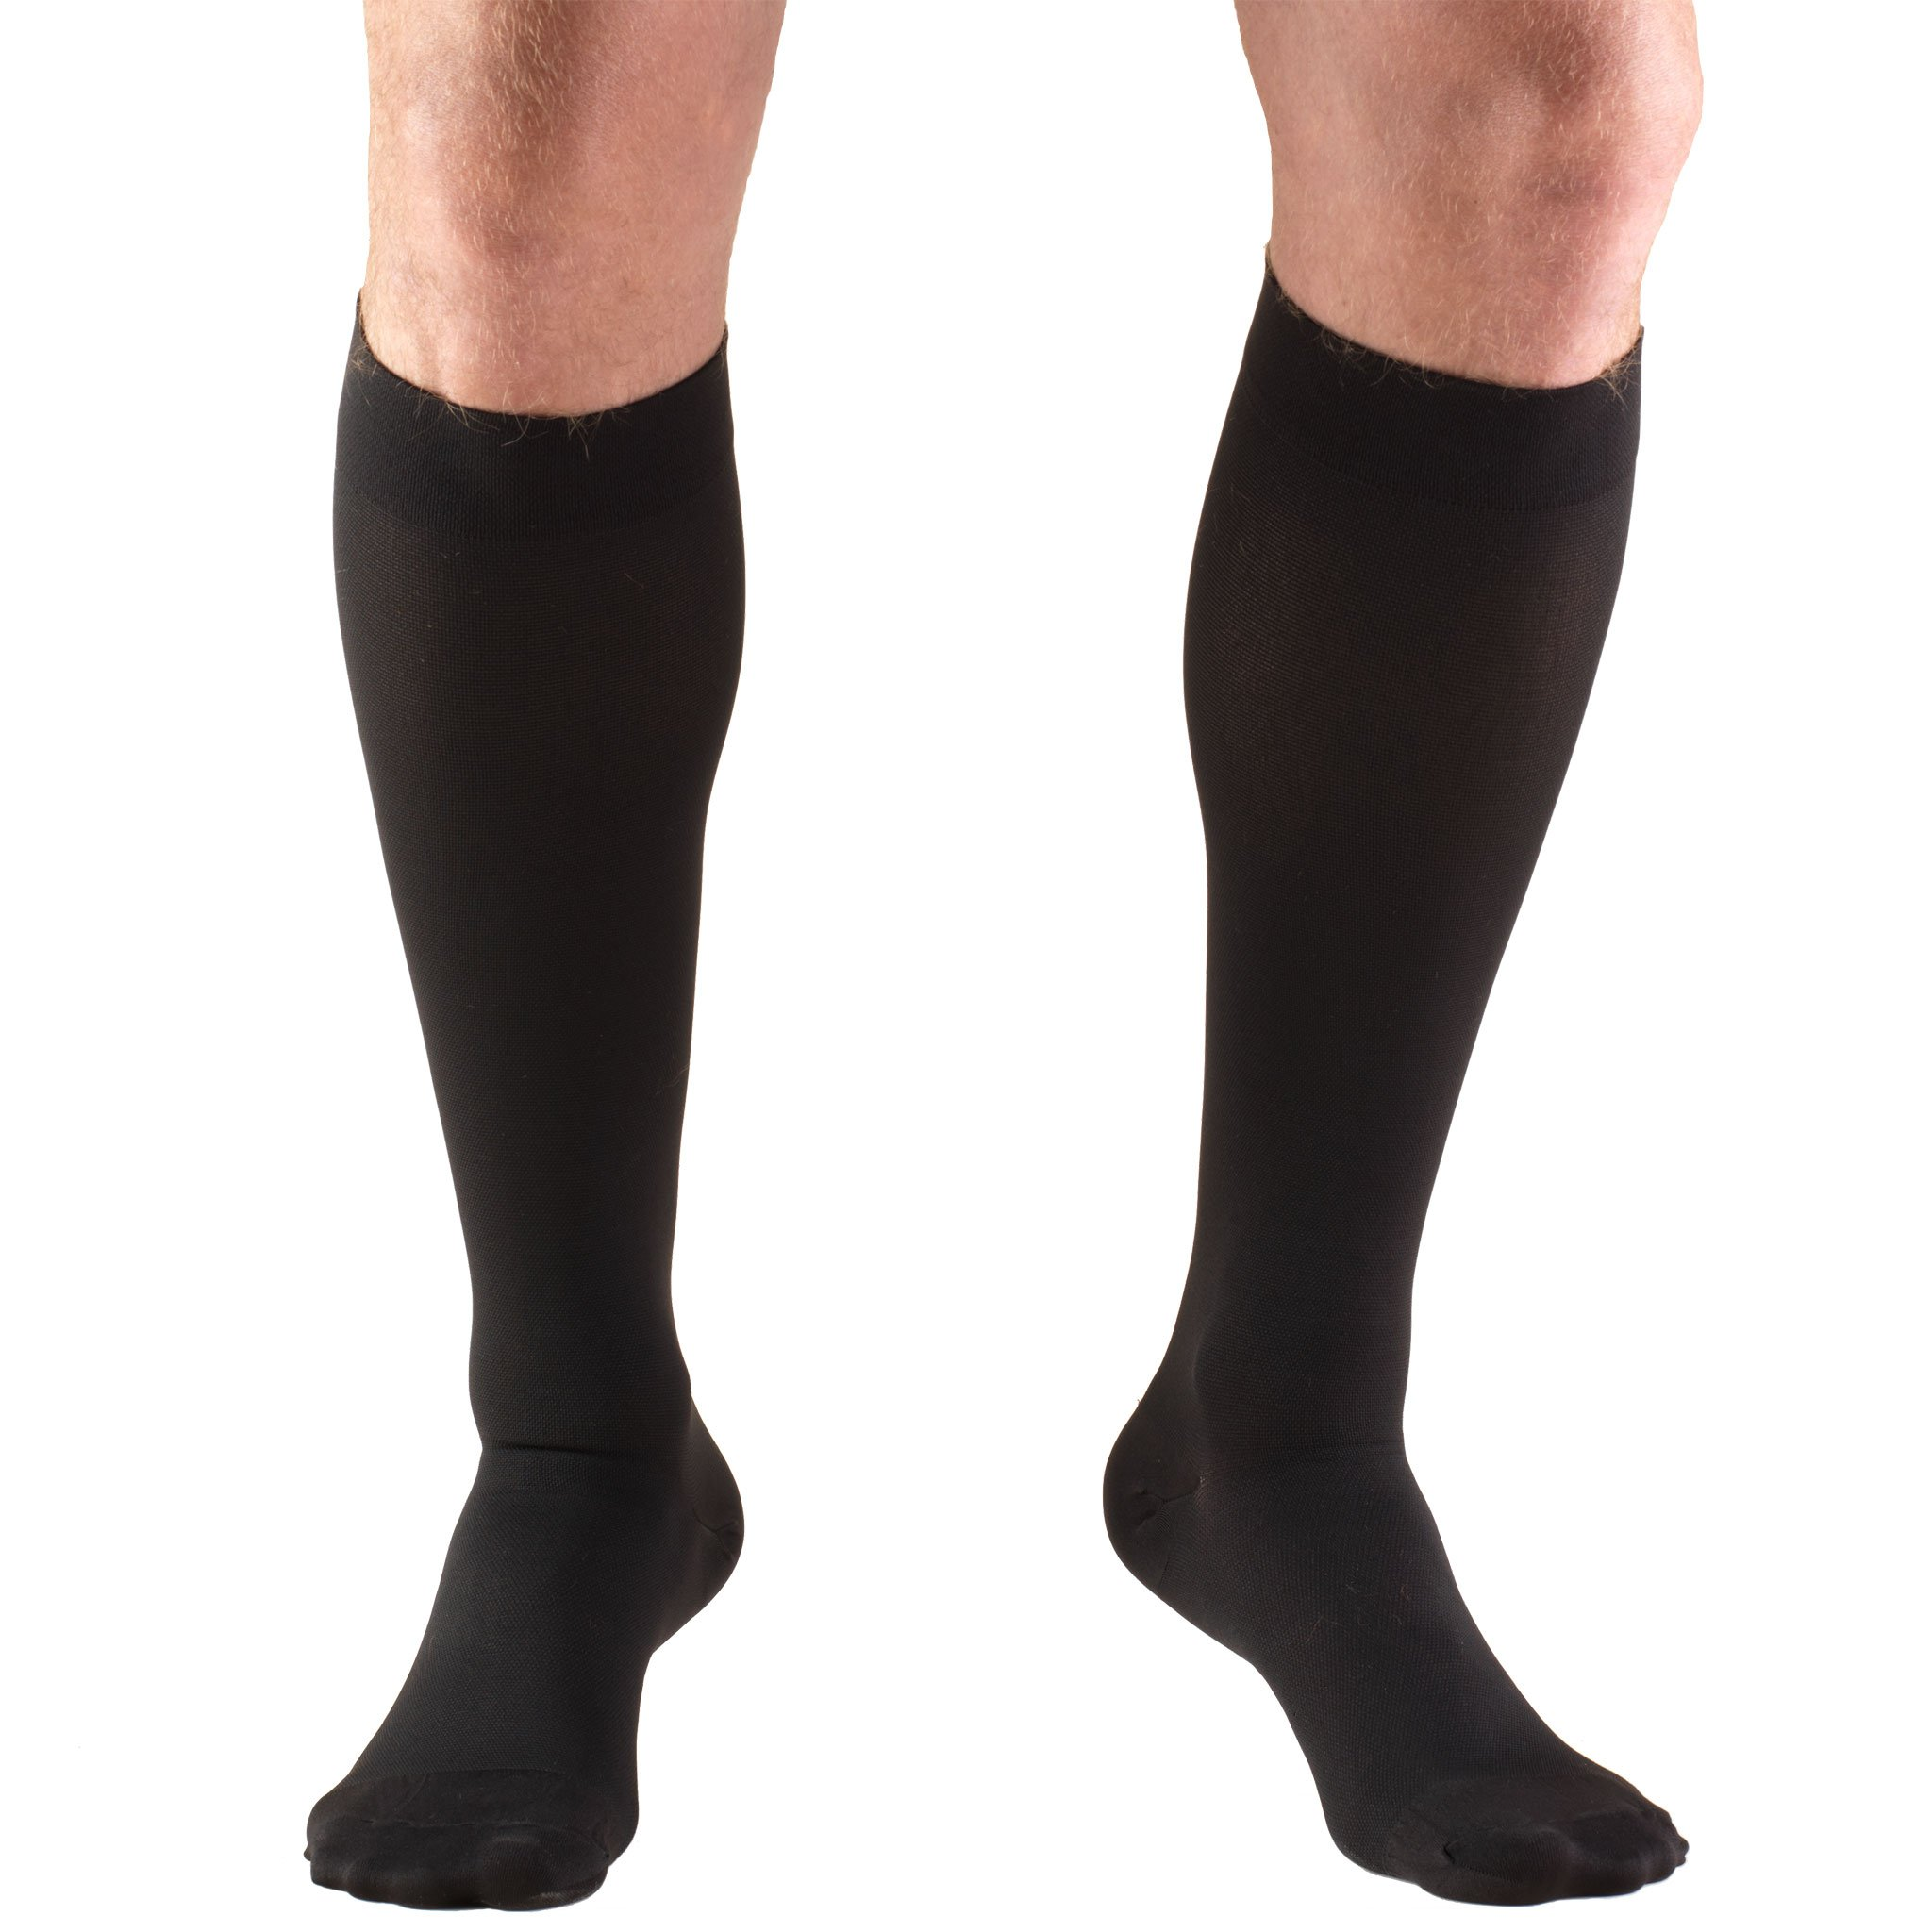 Truform 20-30 mmHg Compression Stockings for Men and Women, Knee High Length, Closed Toe, Black, Large